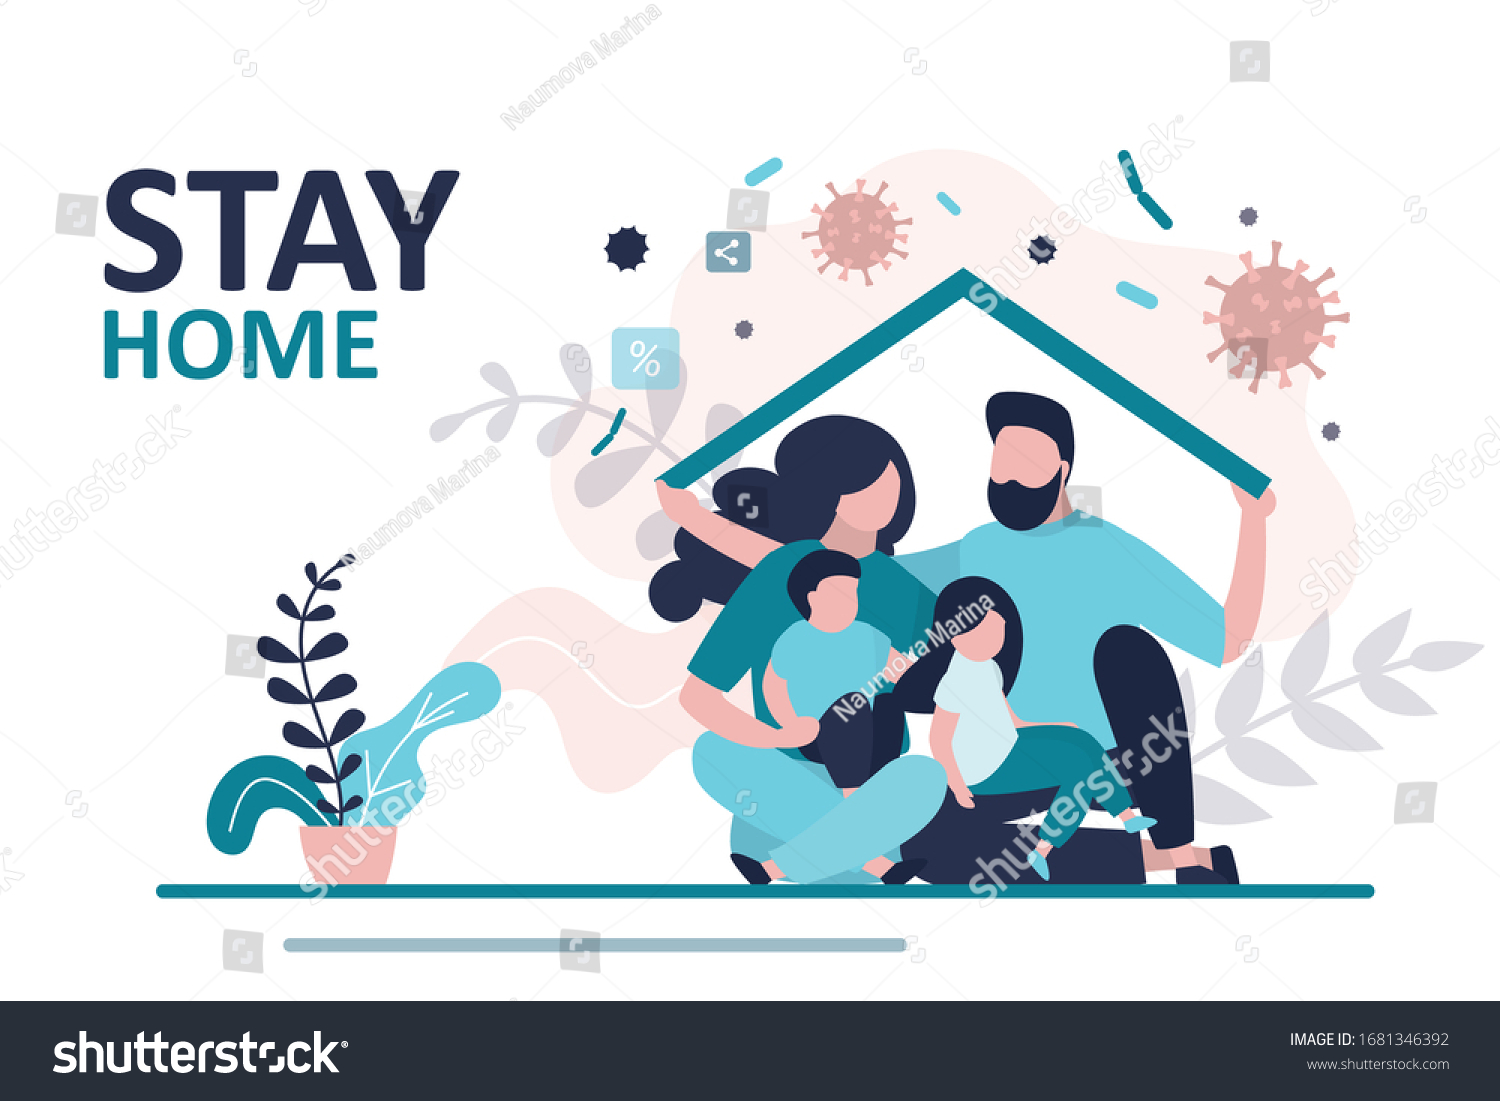 Stay home banner template. Family sitting home. Quarantine or self-isolation. Health care concept. Fears of getting coronavirus. Global viral epidemic or pandemic. Trendy flat vector illustration #1681346392